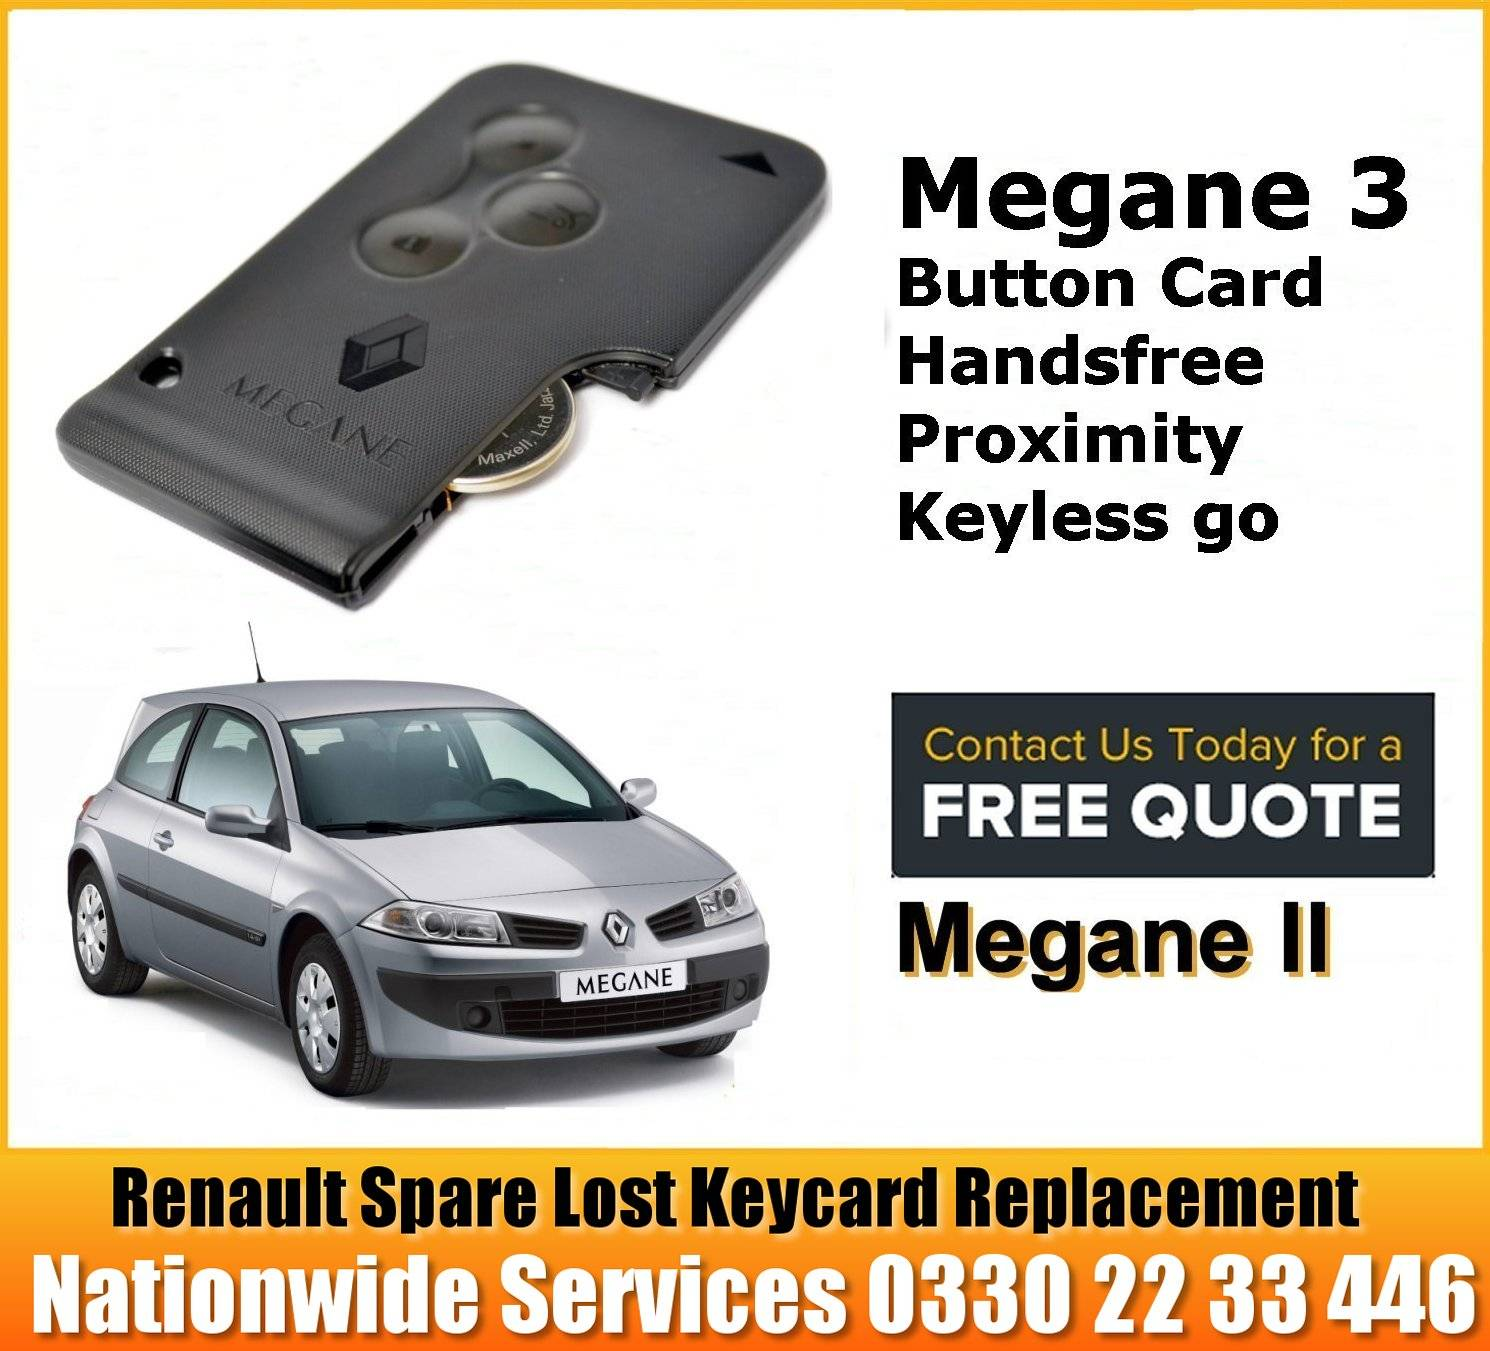 How to Unlock a Renault Megane Scenic 2004 When it has a Flat Battery Using Mechanical Key